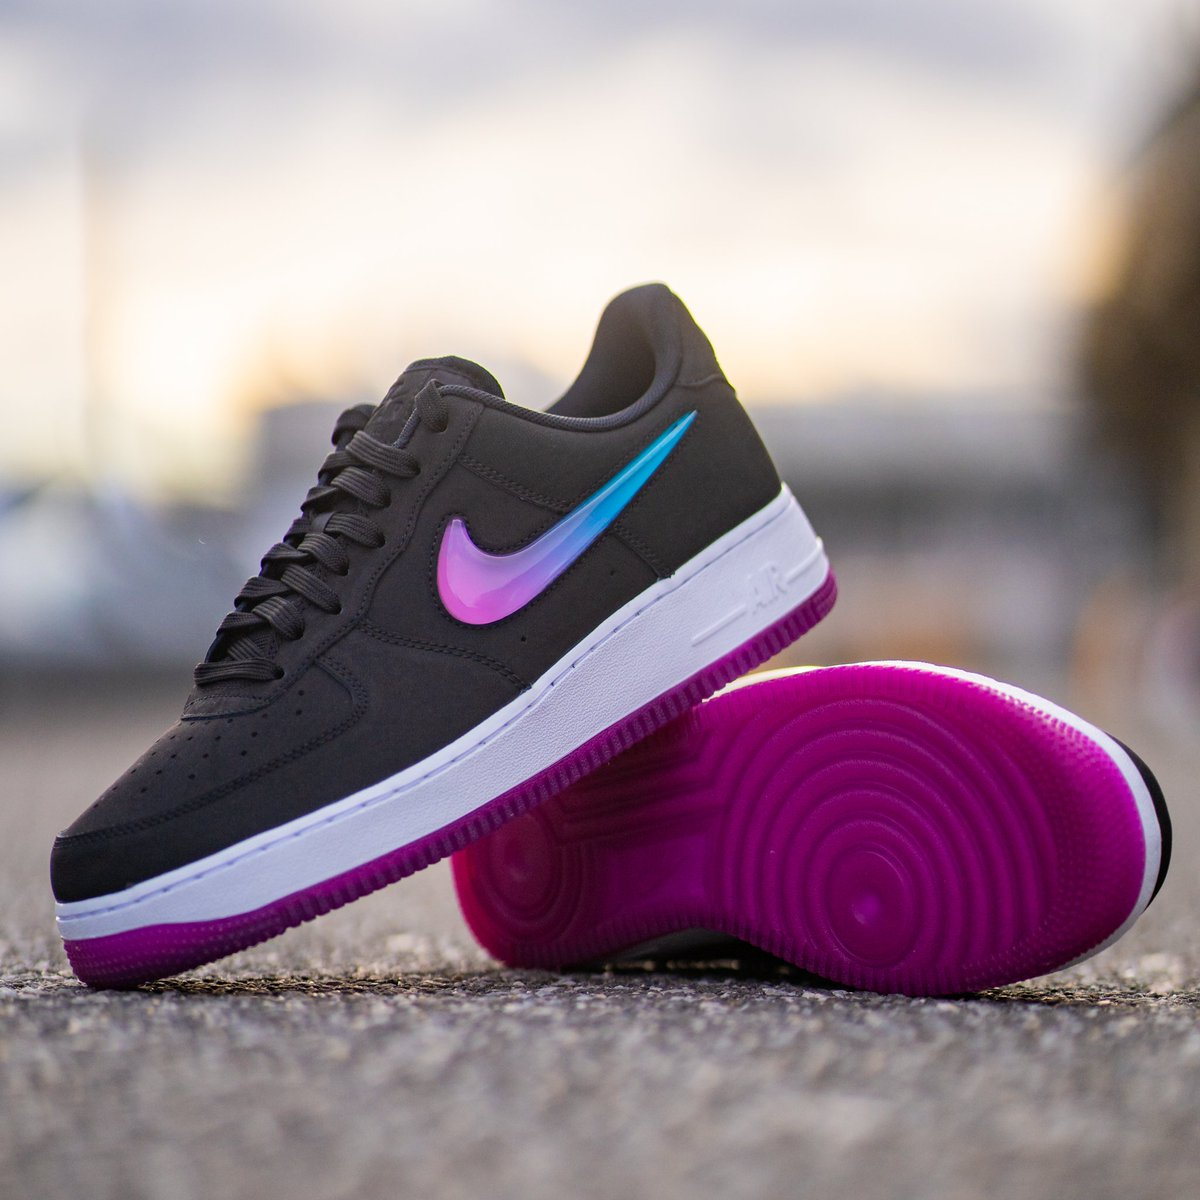 new arrivals 0798a 2cb0a GB S Sneaker Shop on Twitter